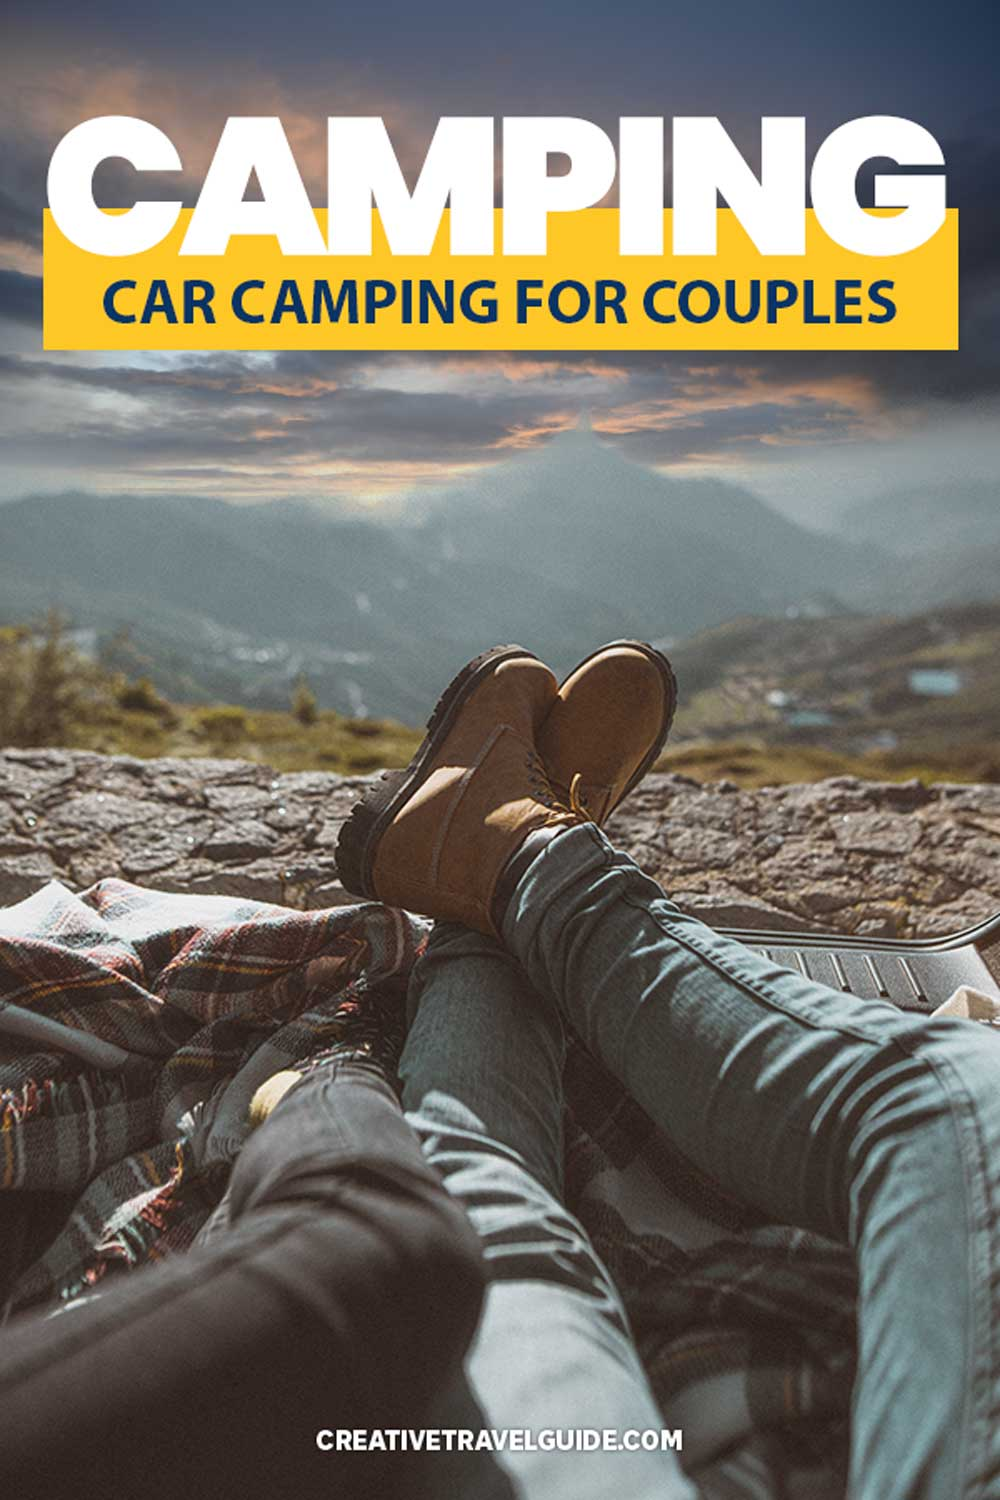 Camping for couples